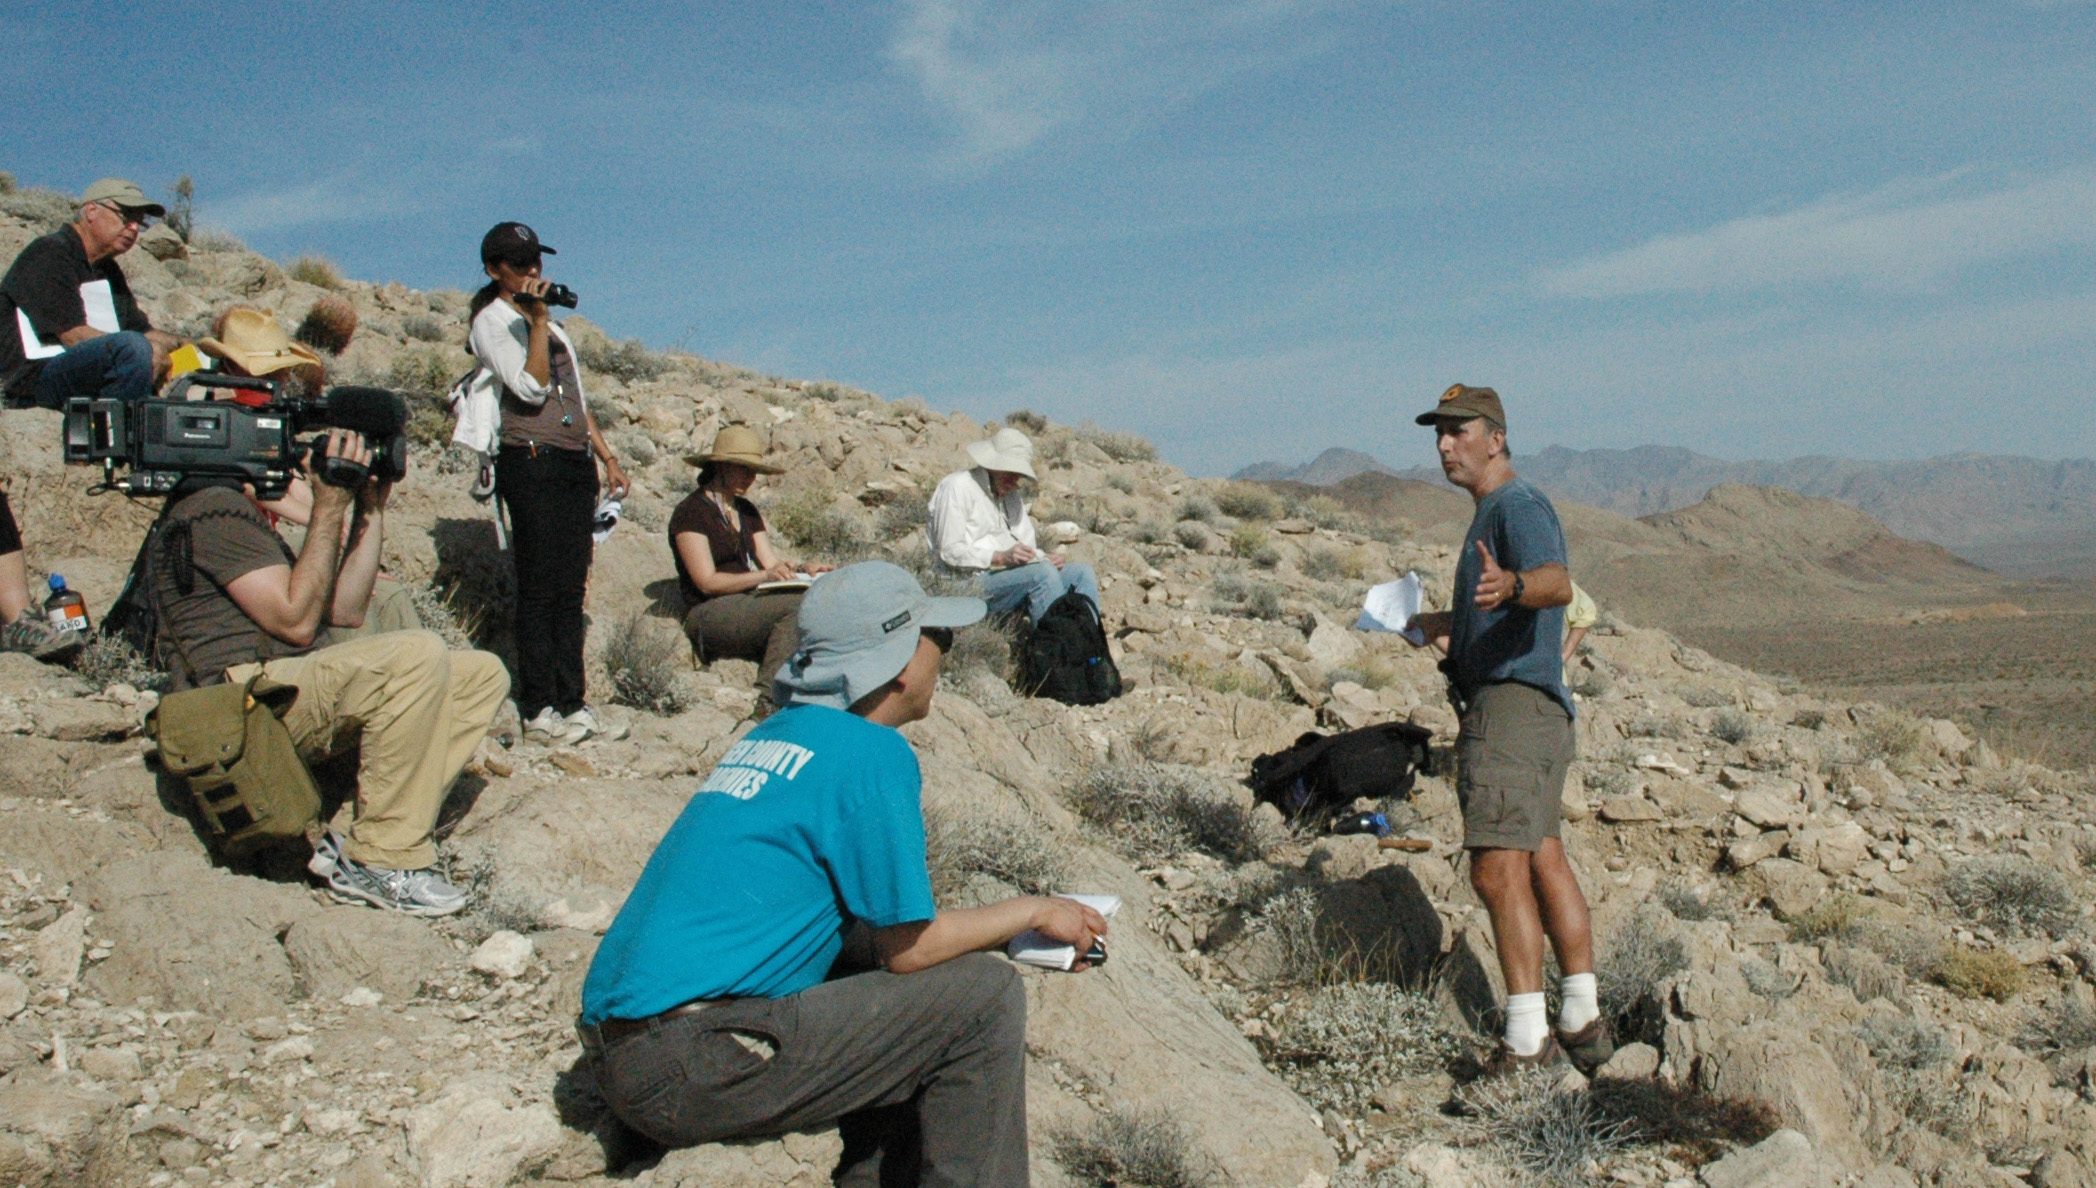 A group of journalists take part in a field trip to learn about the clues hidden in the rock layers with Curiosity Project Scientist, John Grotzinger.